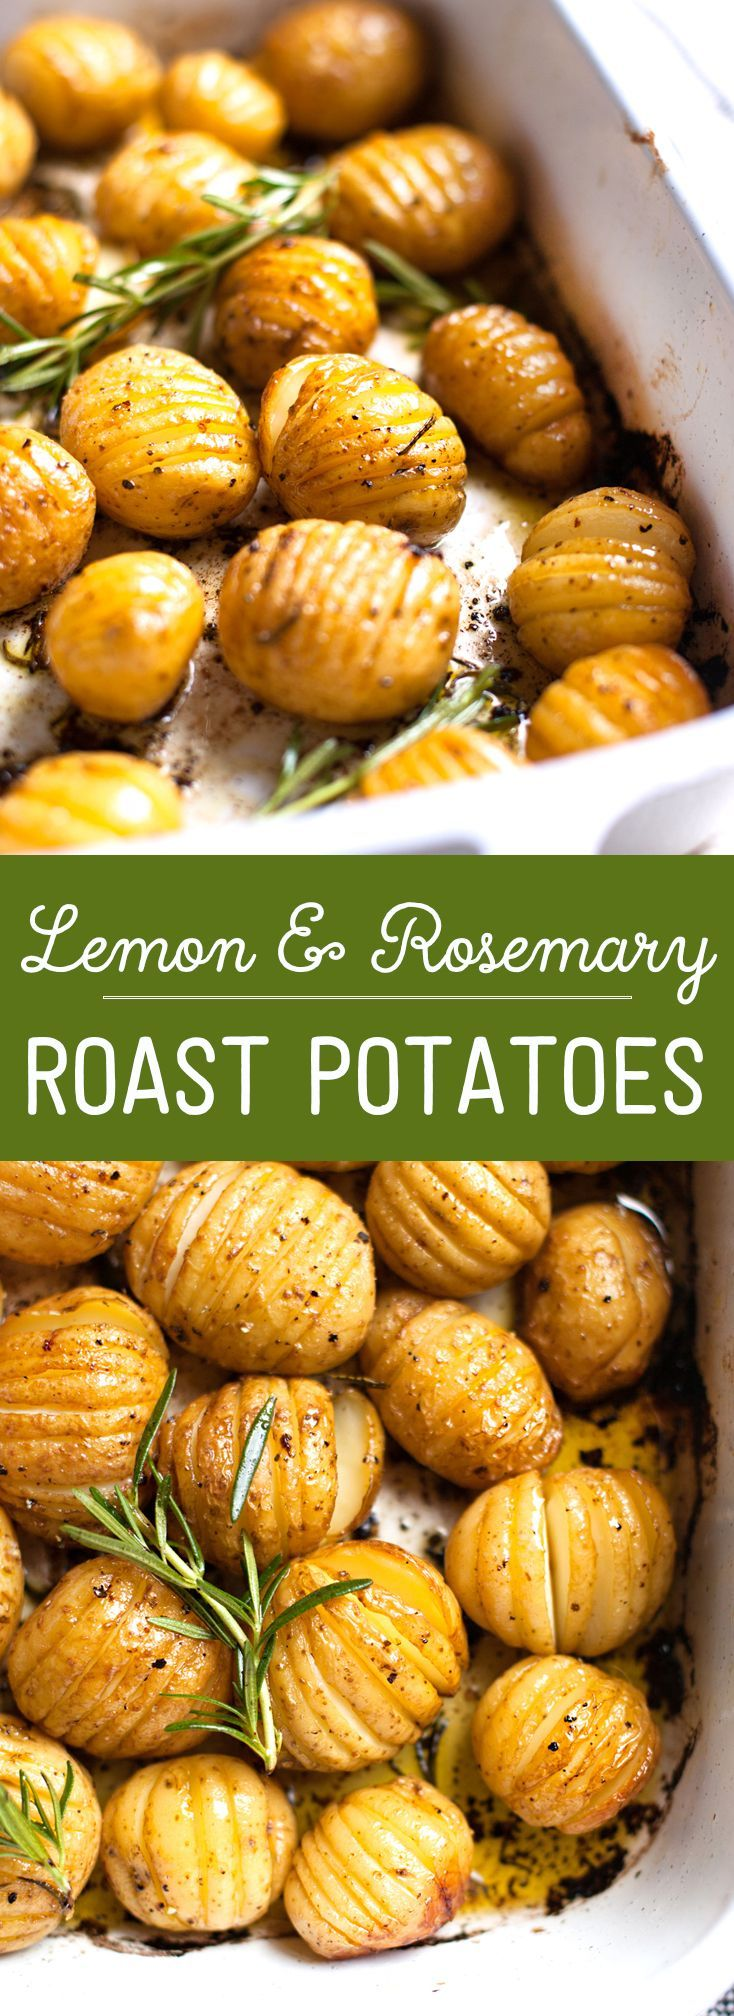 Rosemary and Lemon Roasted Baby Potatoes. Only a few ingredients are needed for this recipe and they are al clean eating friendly! Pin now to make for dinner later this week.